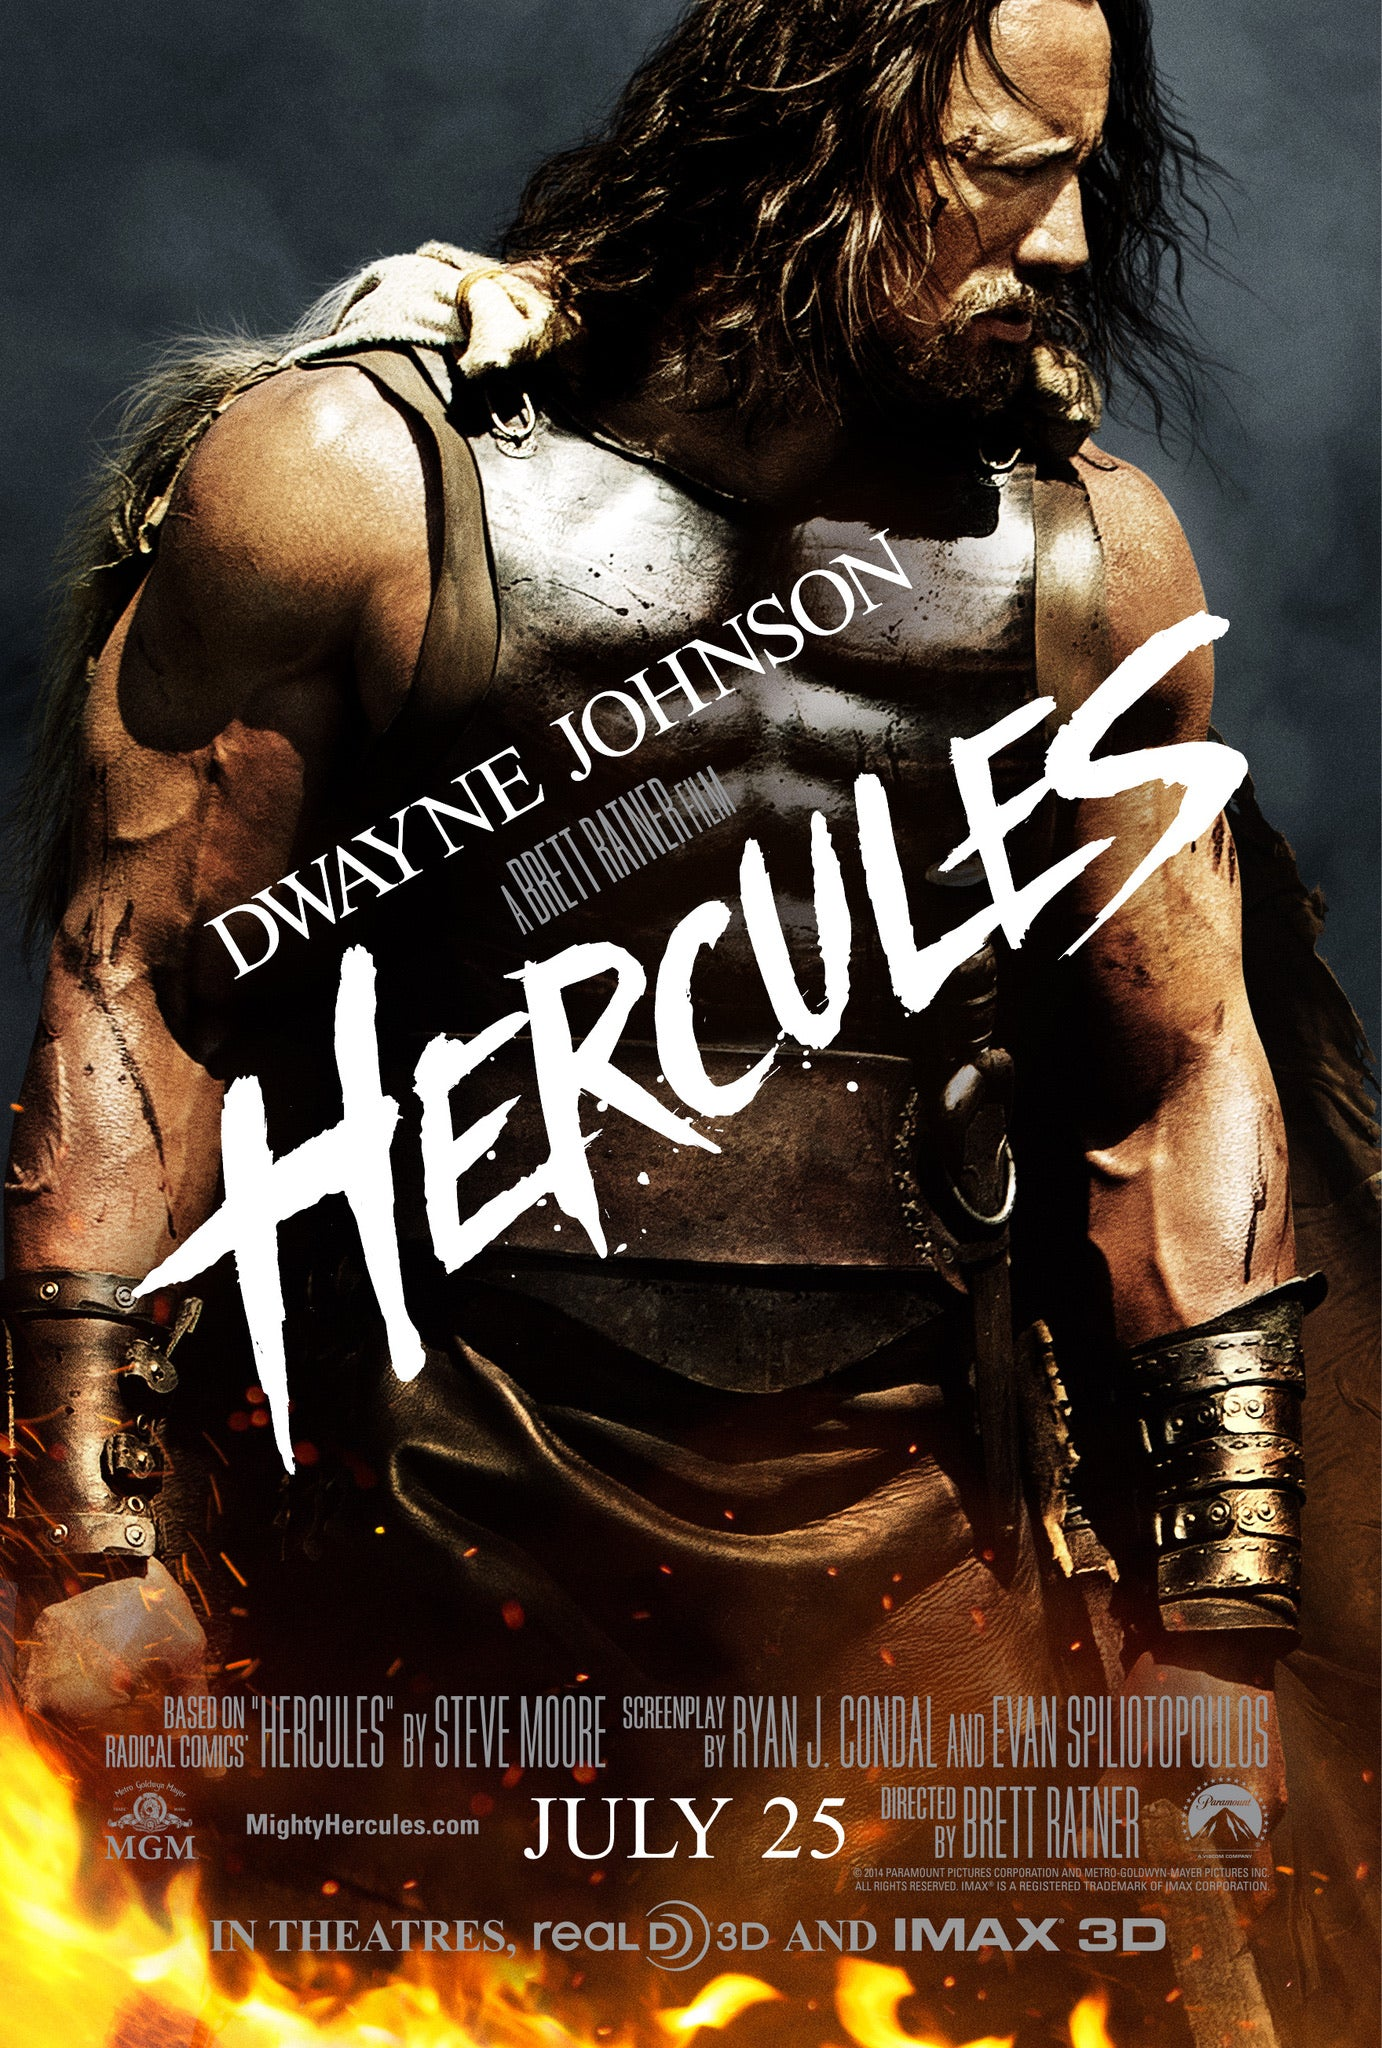 Hercules (2014) iTunes HD redemption only